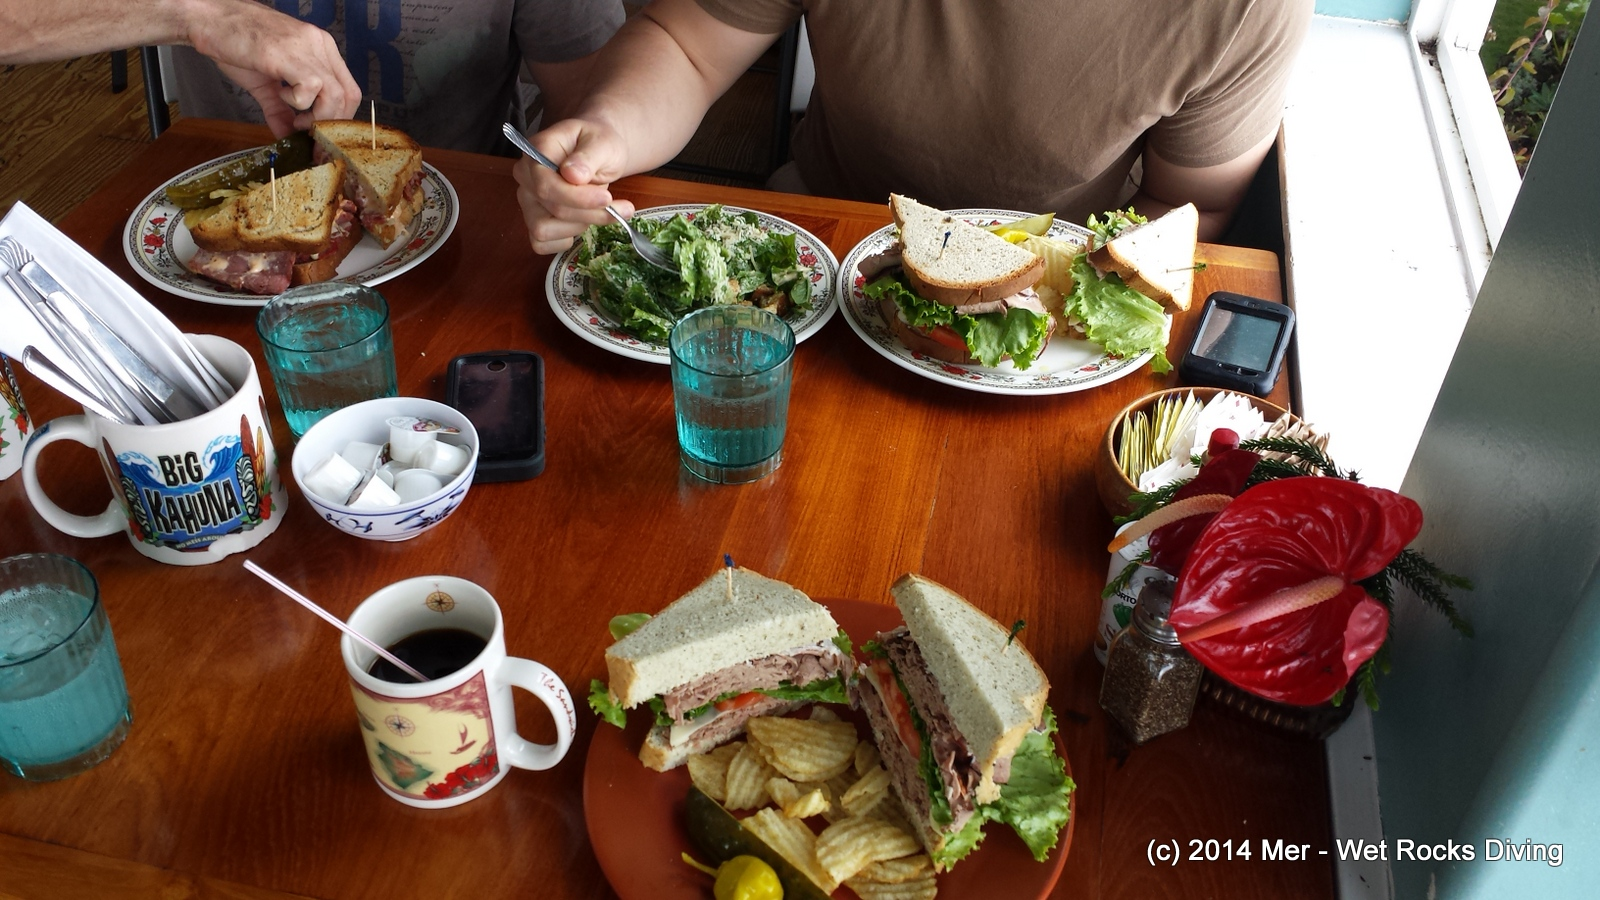 The lunch at The Coffee Shack